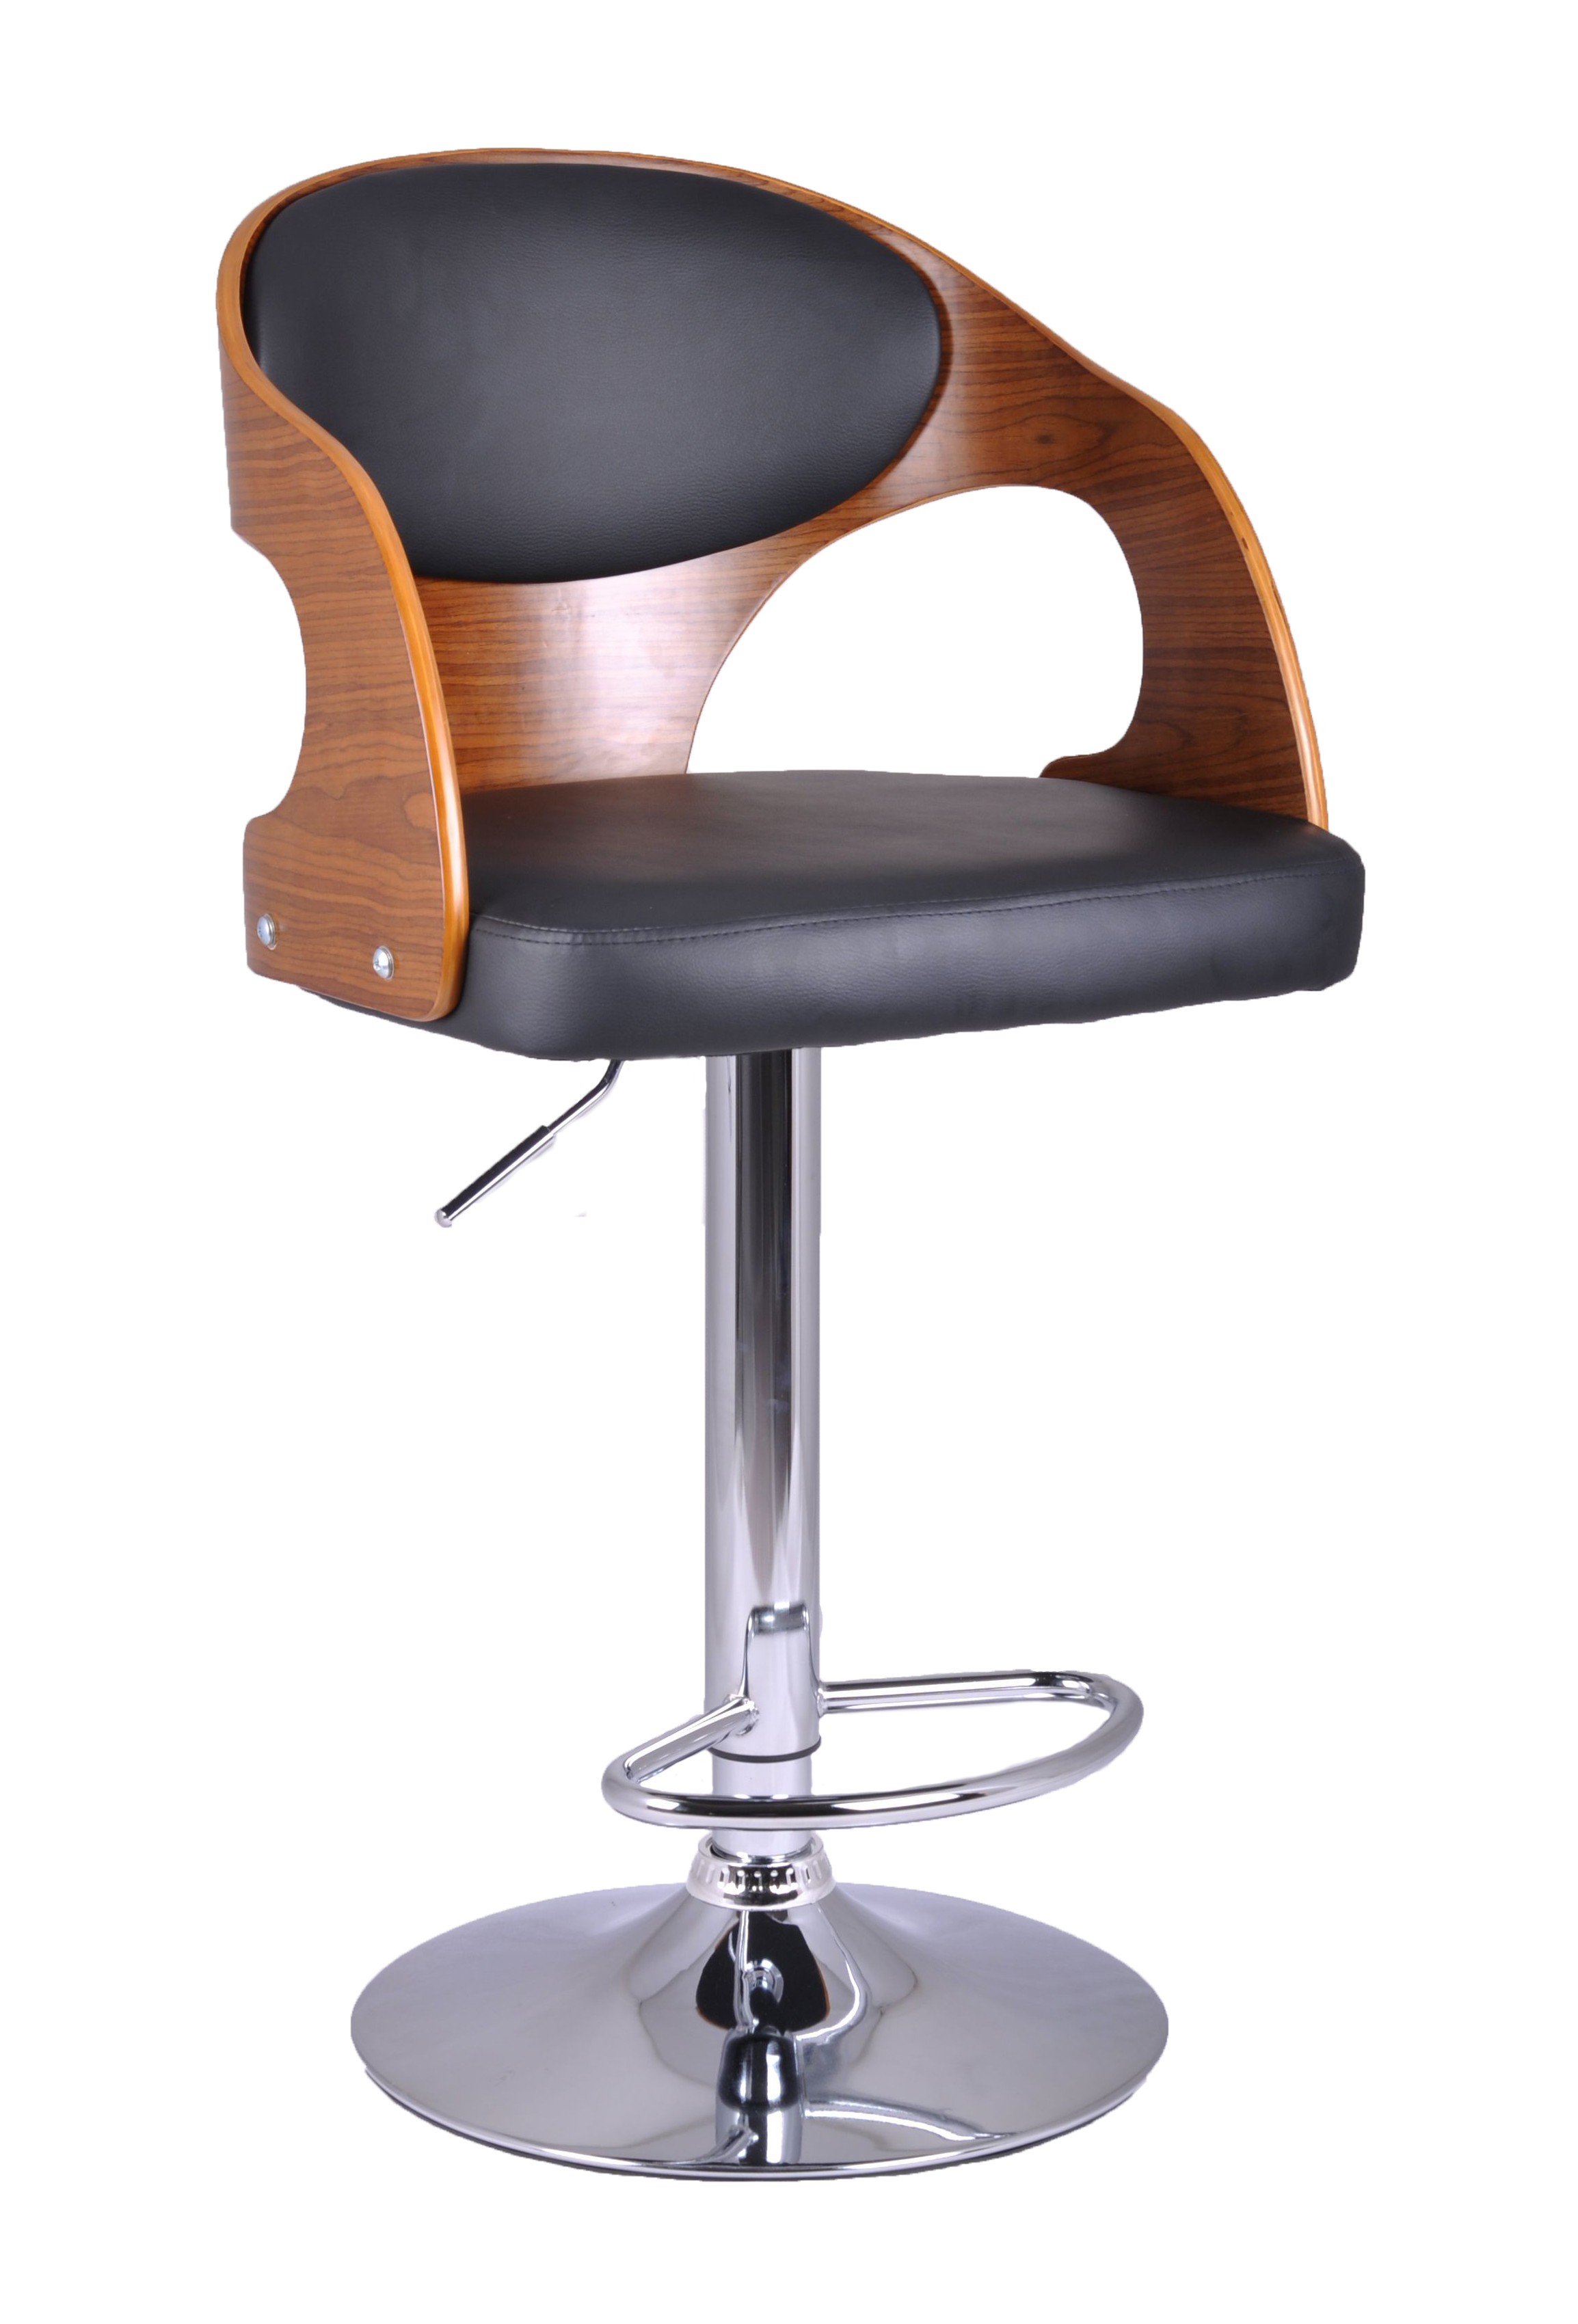 Wooden bar stool kitchen chair dining pu leather luxury for Luxury leather bar stools